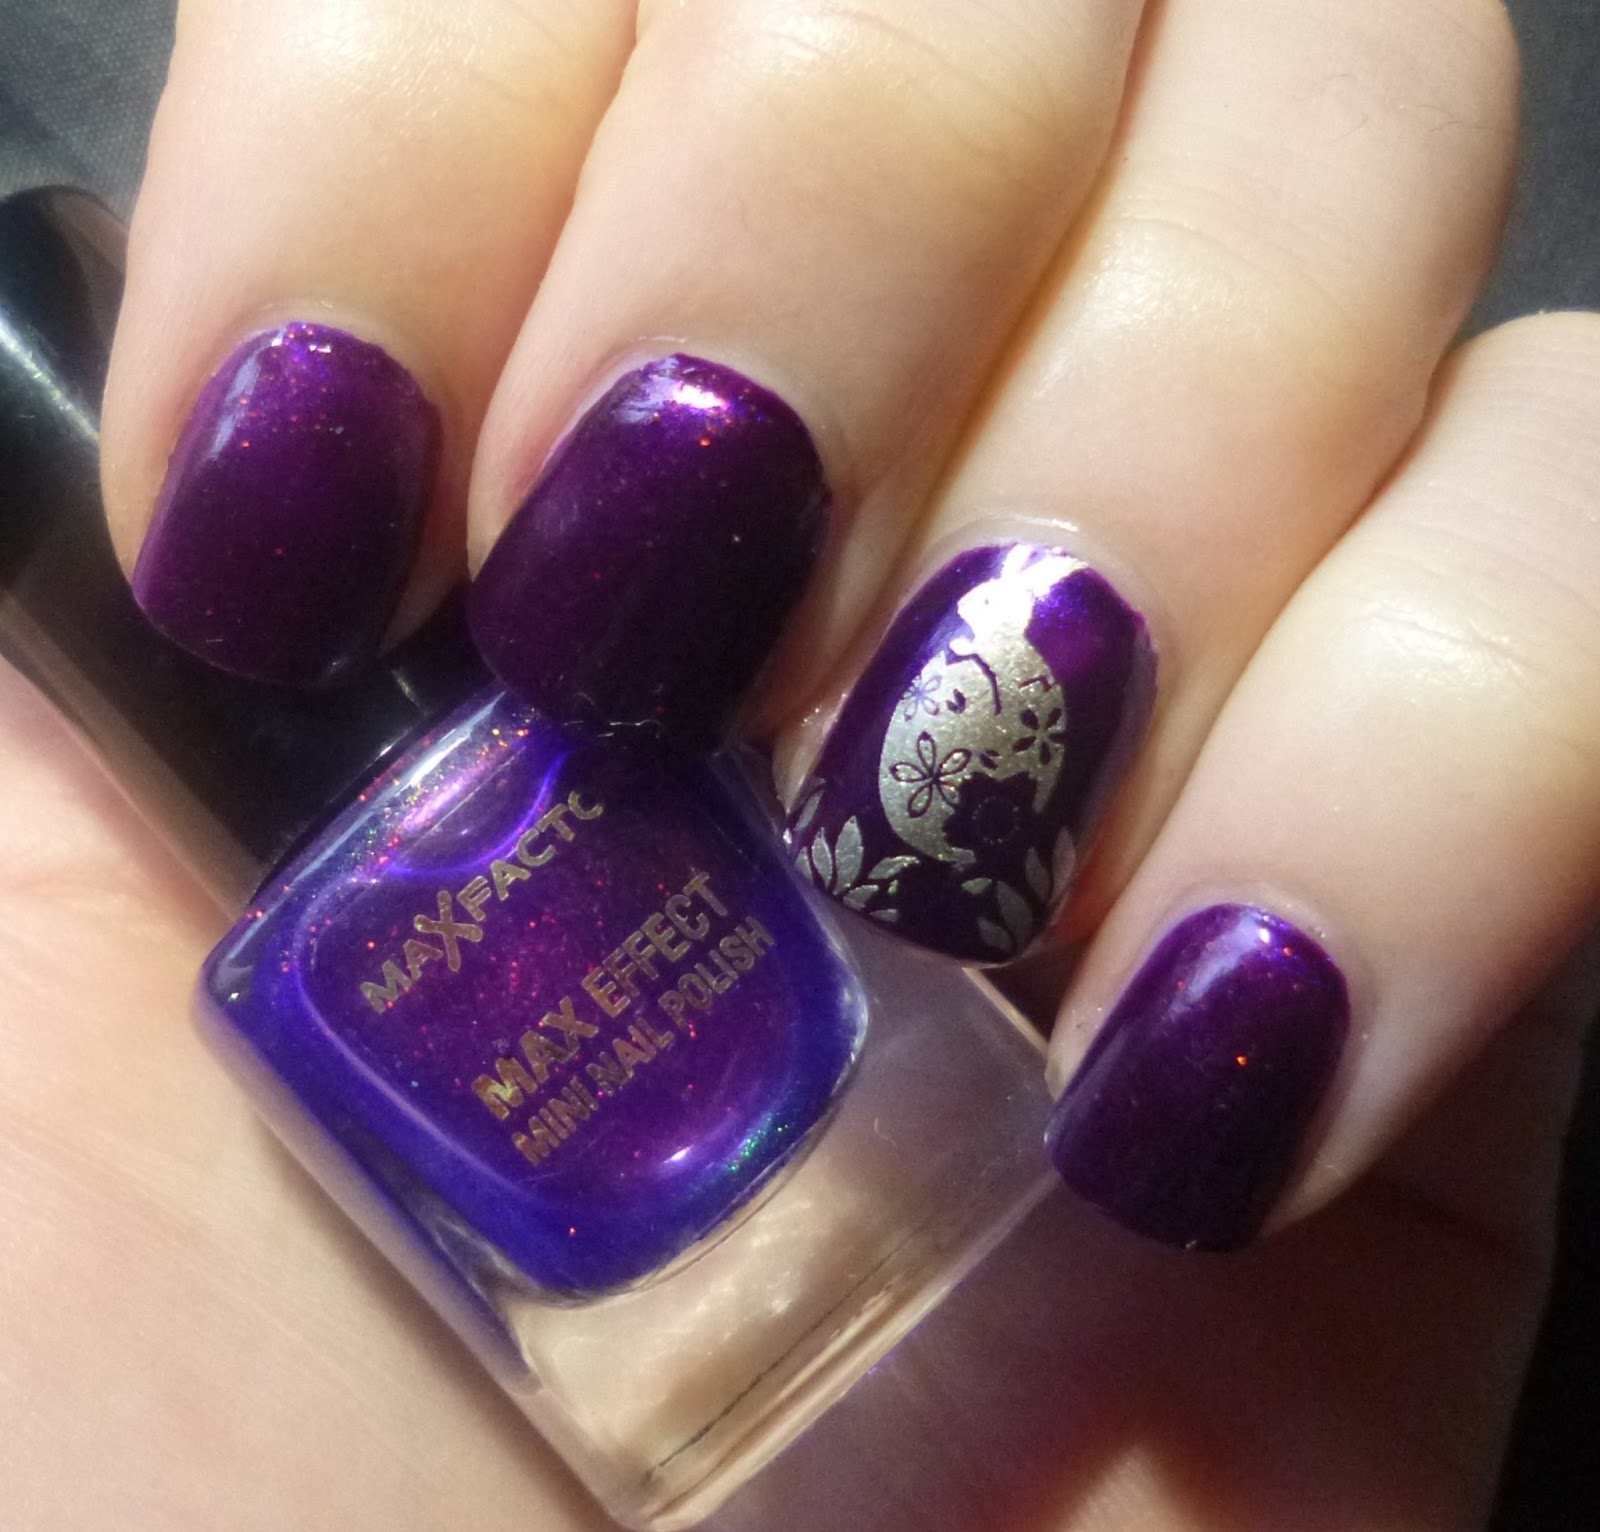 On Top Of Purple I Layered Just One Coat The Much Coveted Max Factor Fantasy Fire It Is Lovely To Look At But Terrible Take Pictures